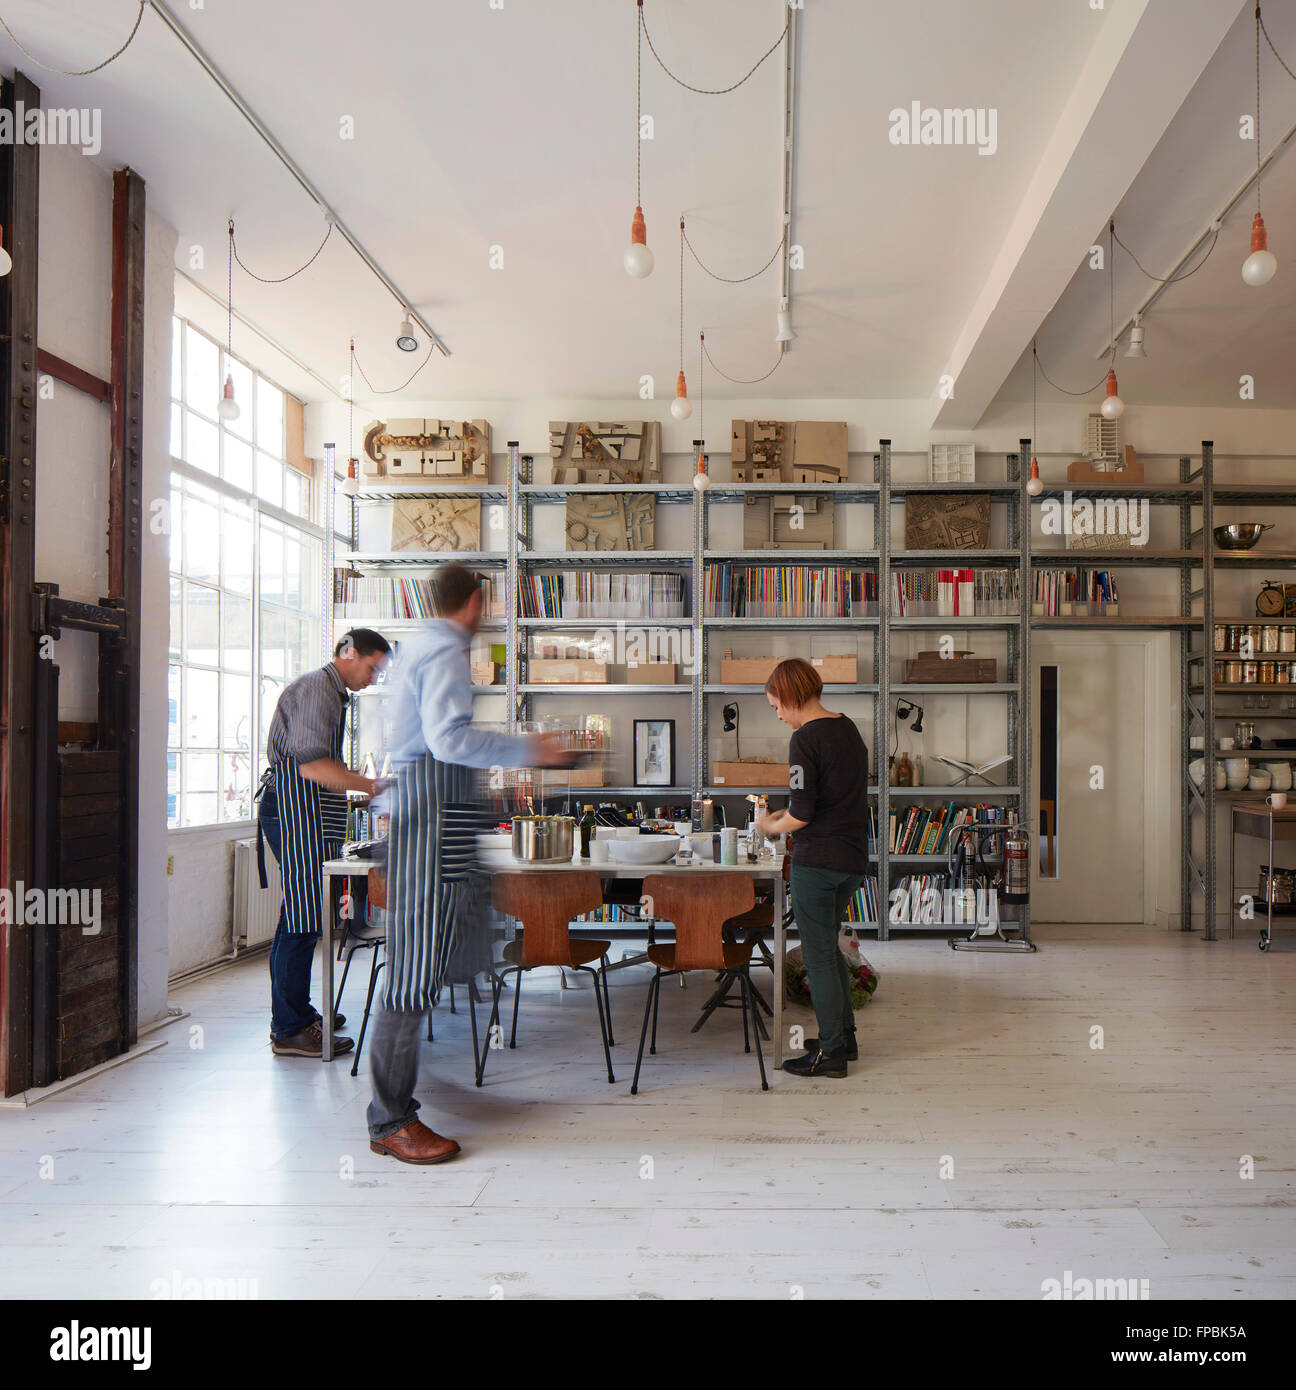 Preparing lunch in ground floor kitchen. DSDHA architectural office, London, United Kingdom. Architect: DSDHA, 2015. - Stock Image